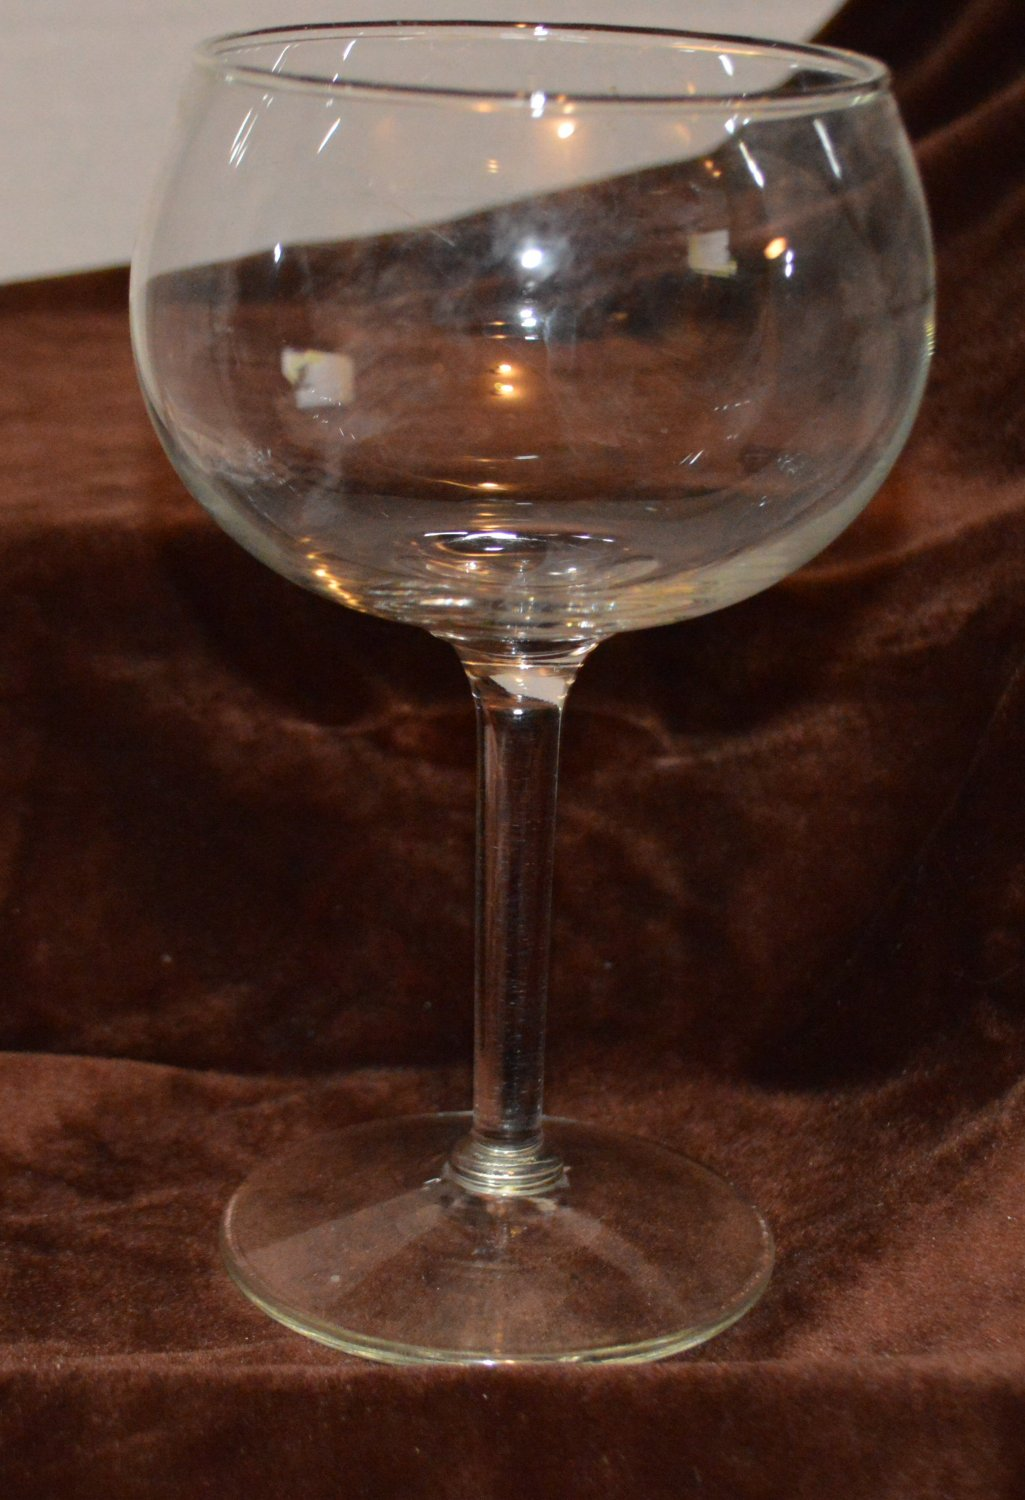 The Perfect Wine Crystal Glass for Swirling the wine